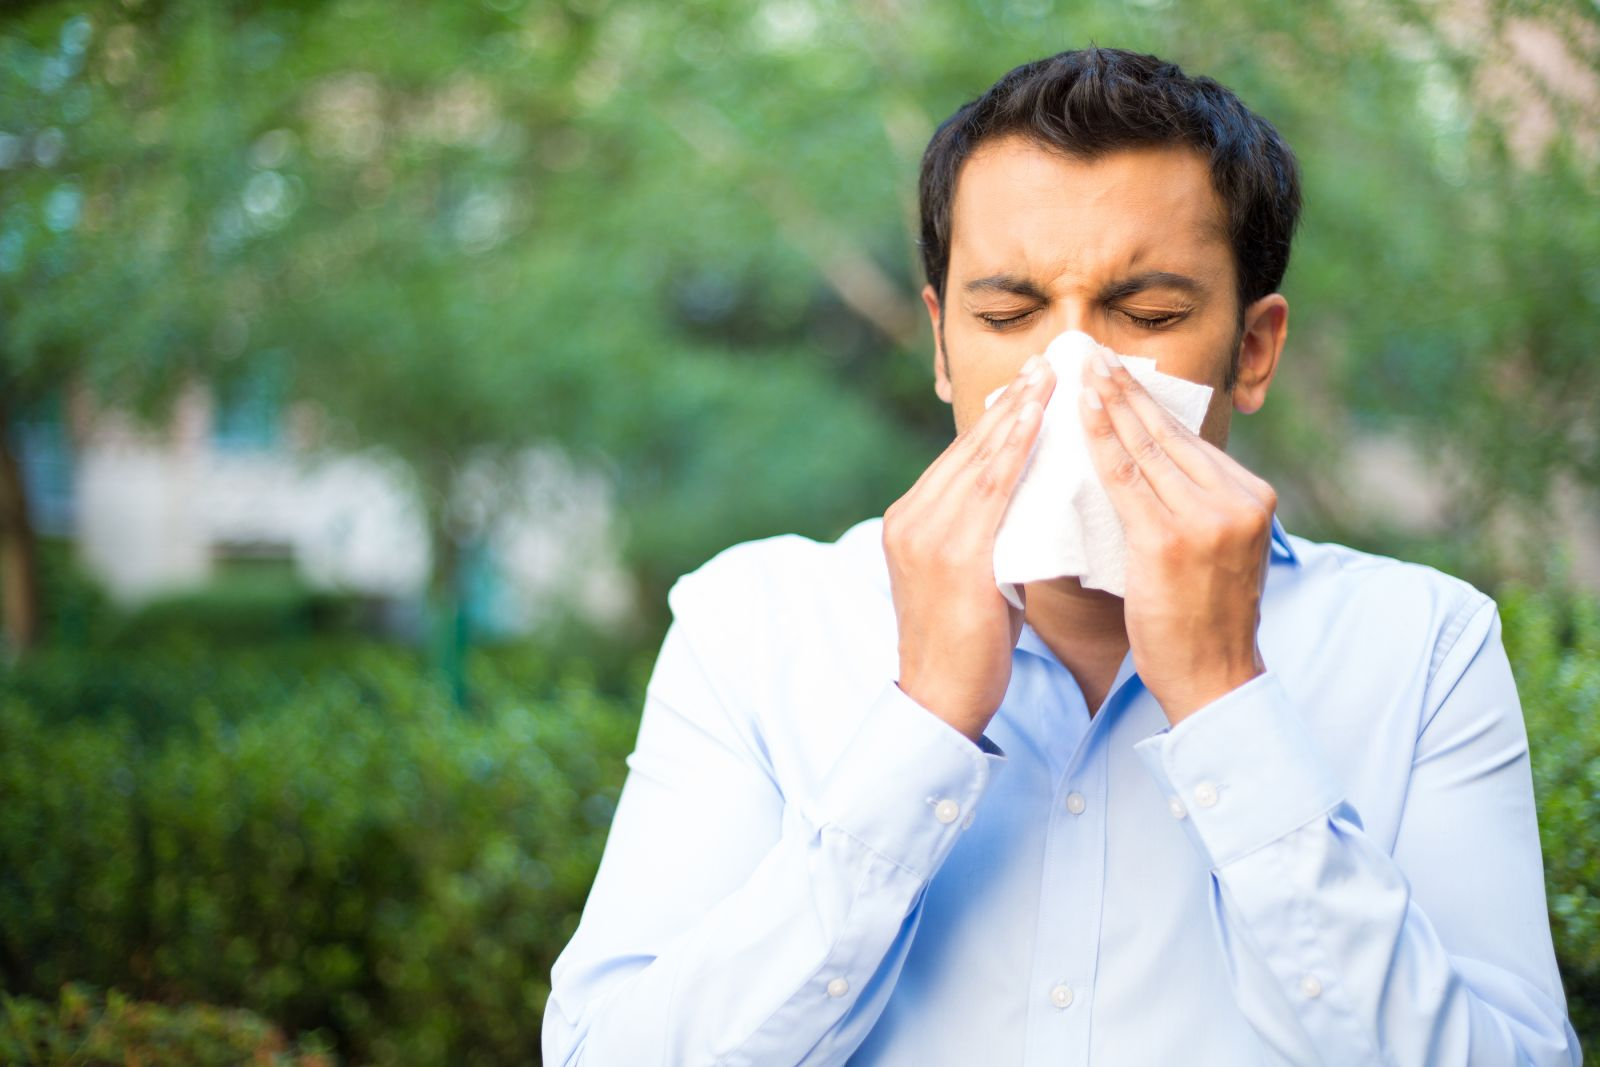 3 ways to manage allergies - Harvard Health